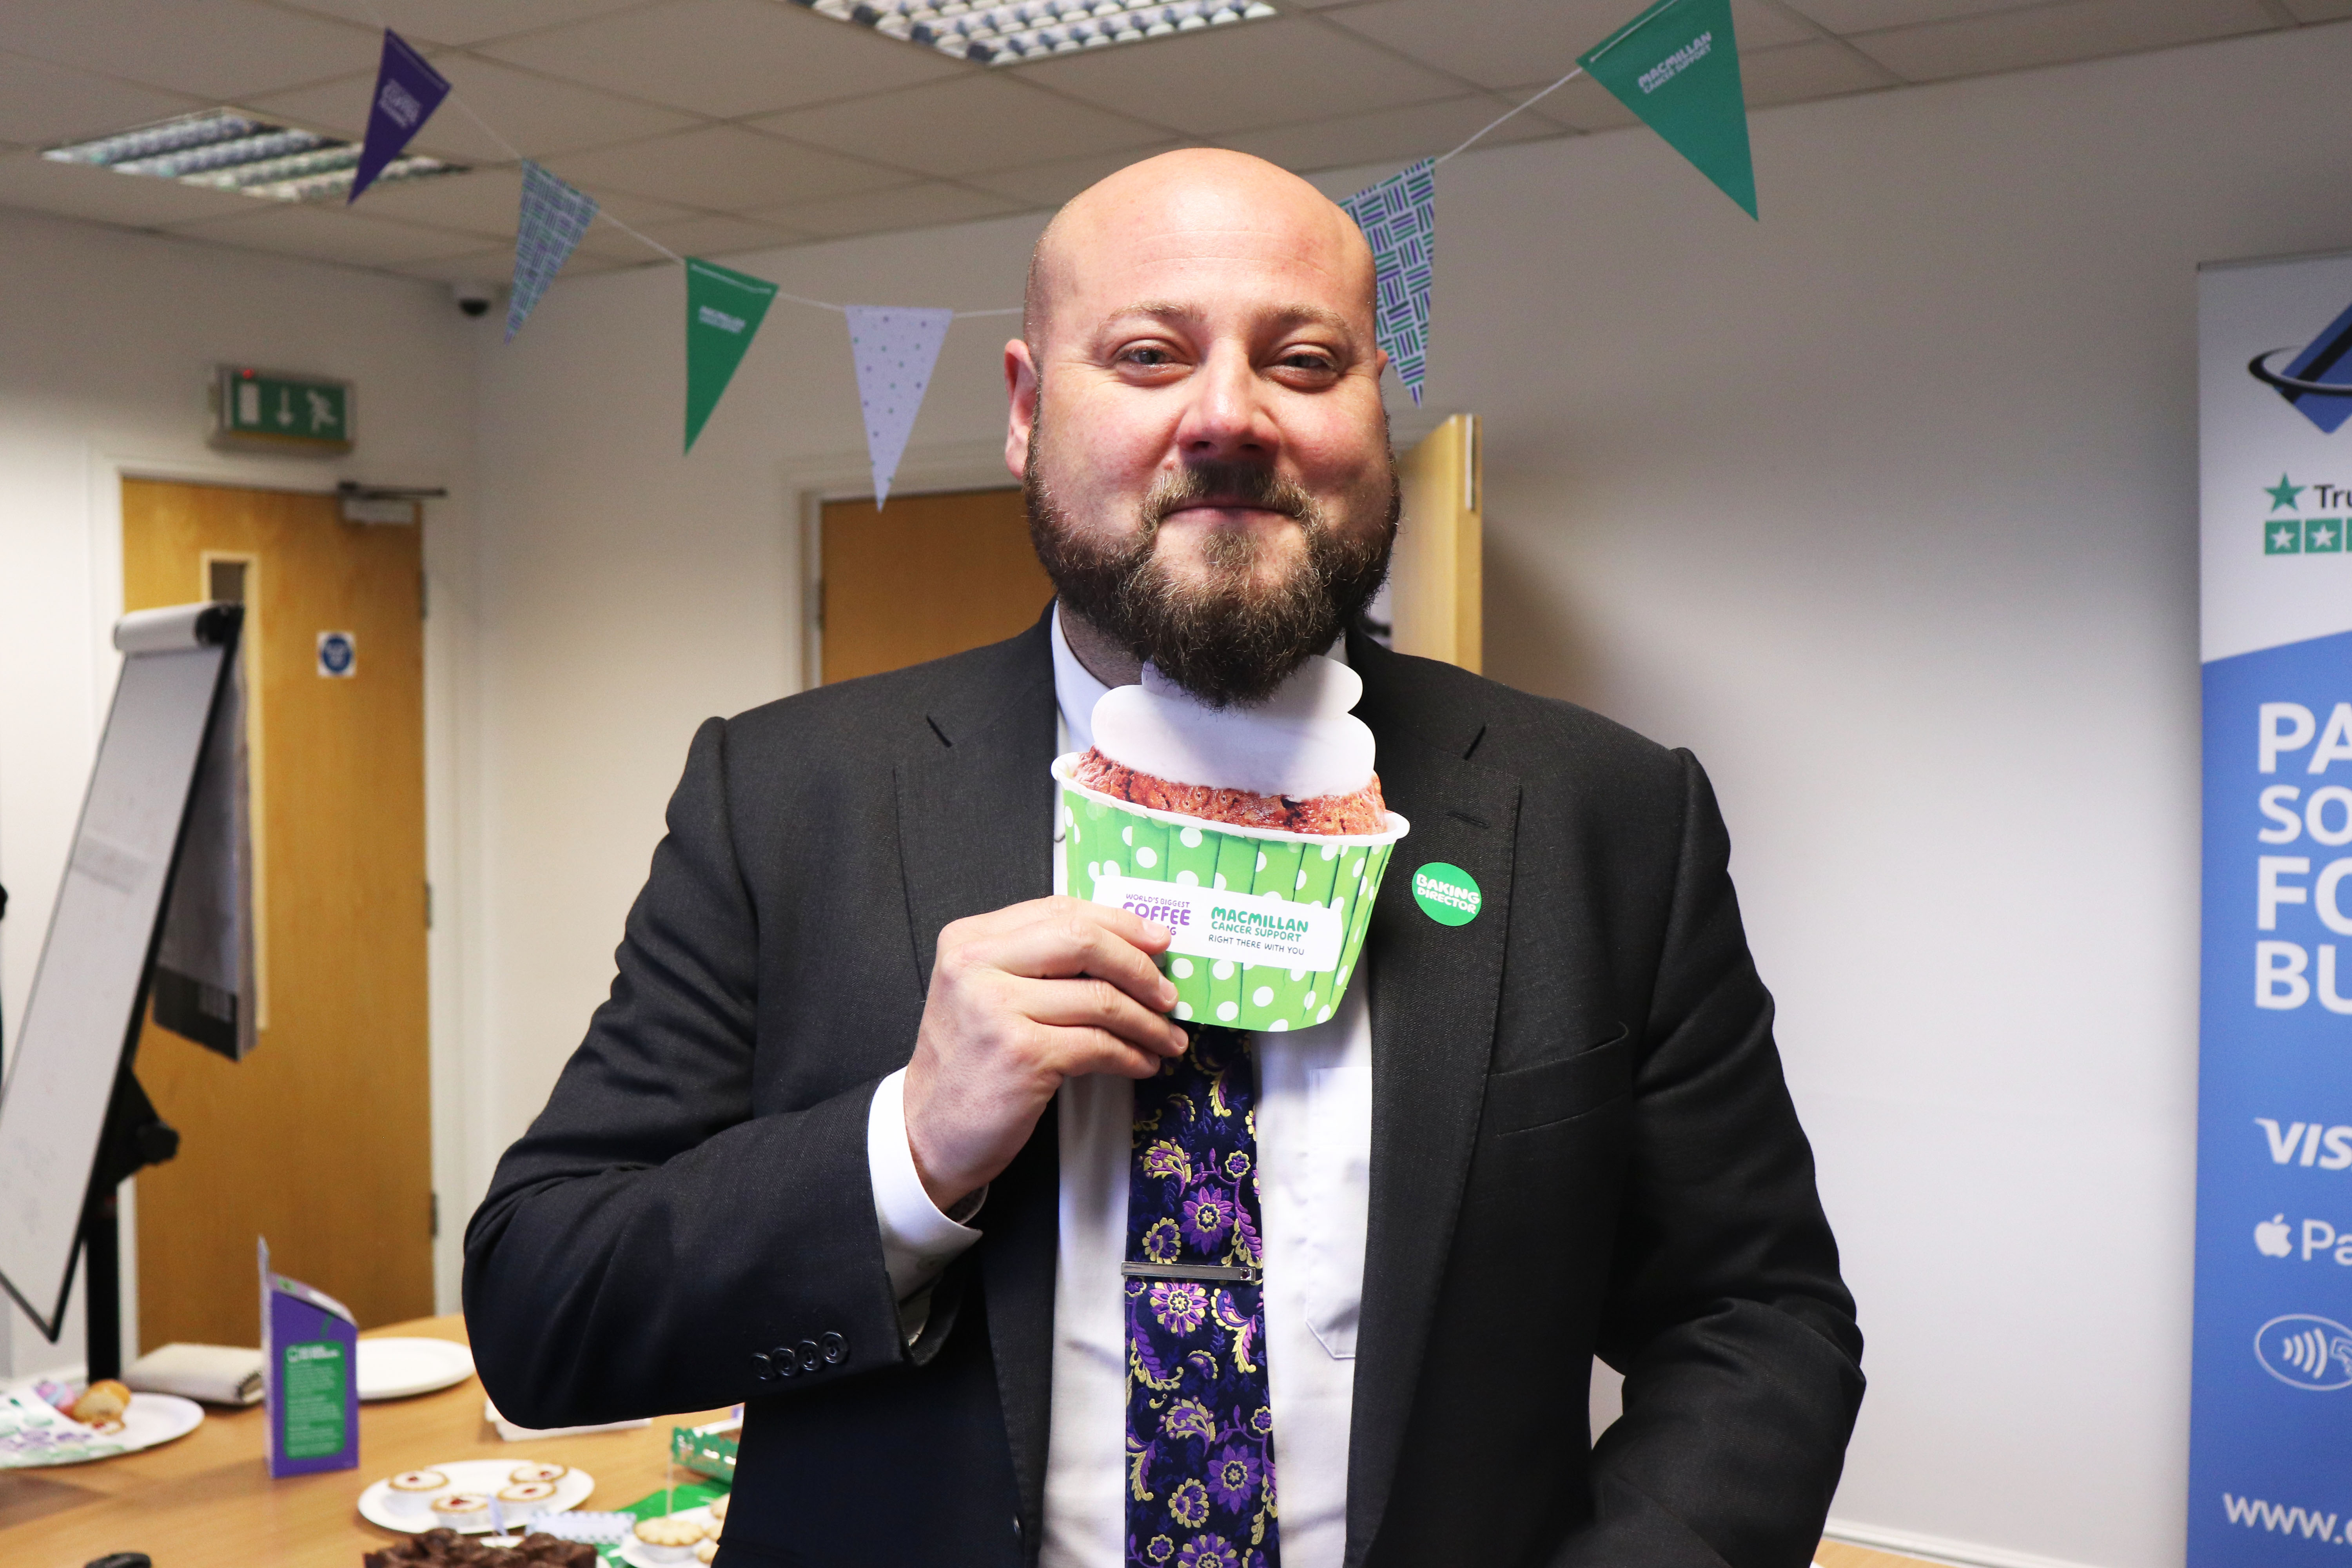 Card Saver get their aprons on for Macmillan's World's Biggest Coffee Morning